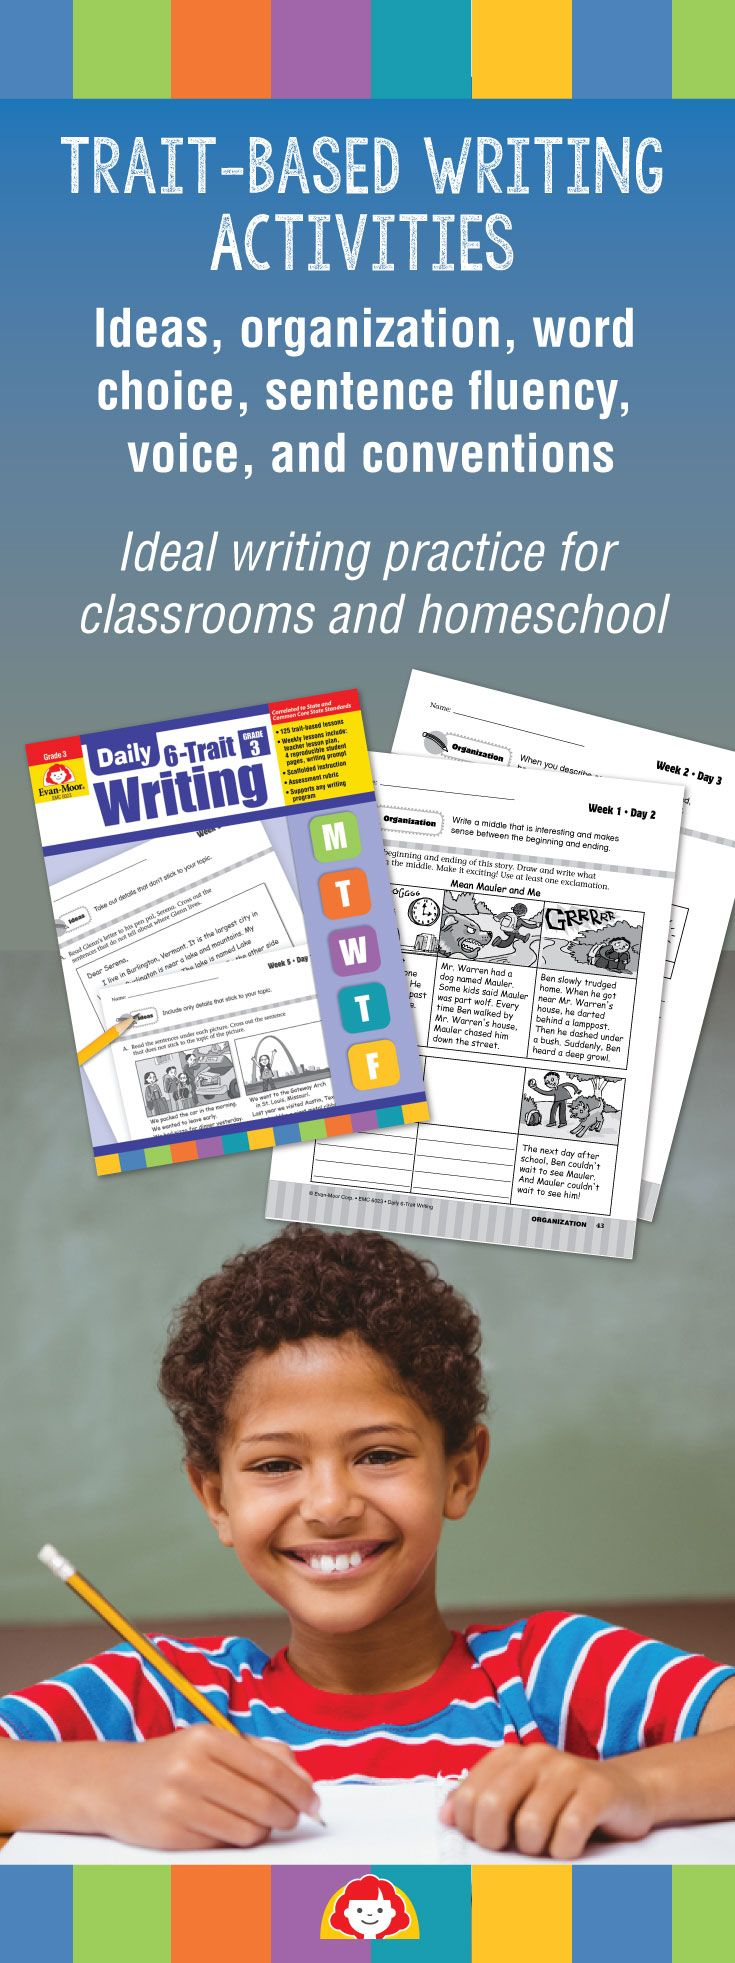 For grades 1–6, Evan-Moor's Daily 6-Trait Writing gives you fun and focused writing activities to help students become strong writers! 125 trait-based writing activities are easy to incorporate into your writing program.